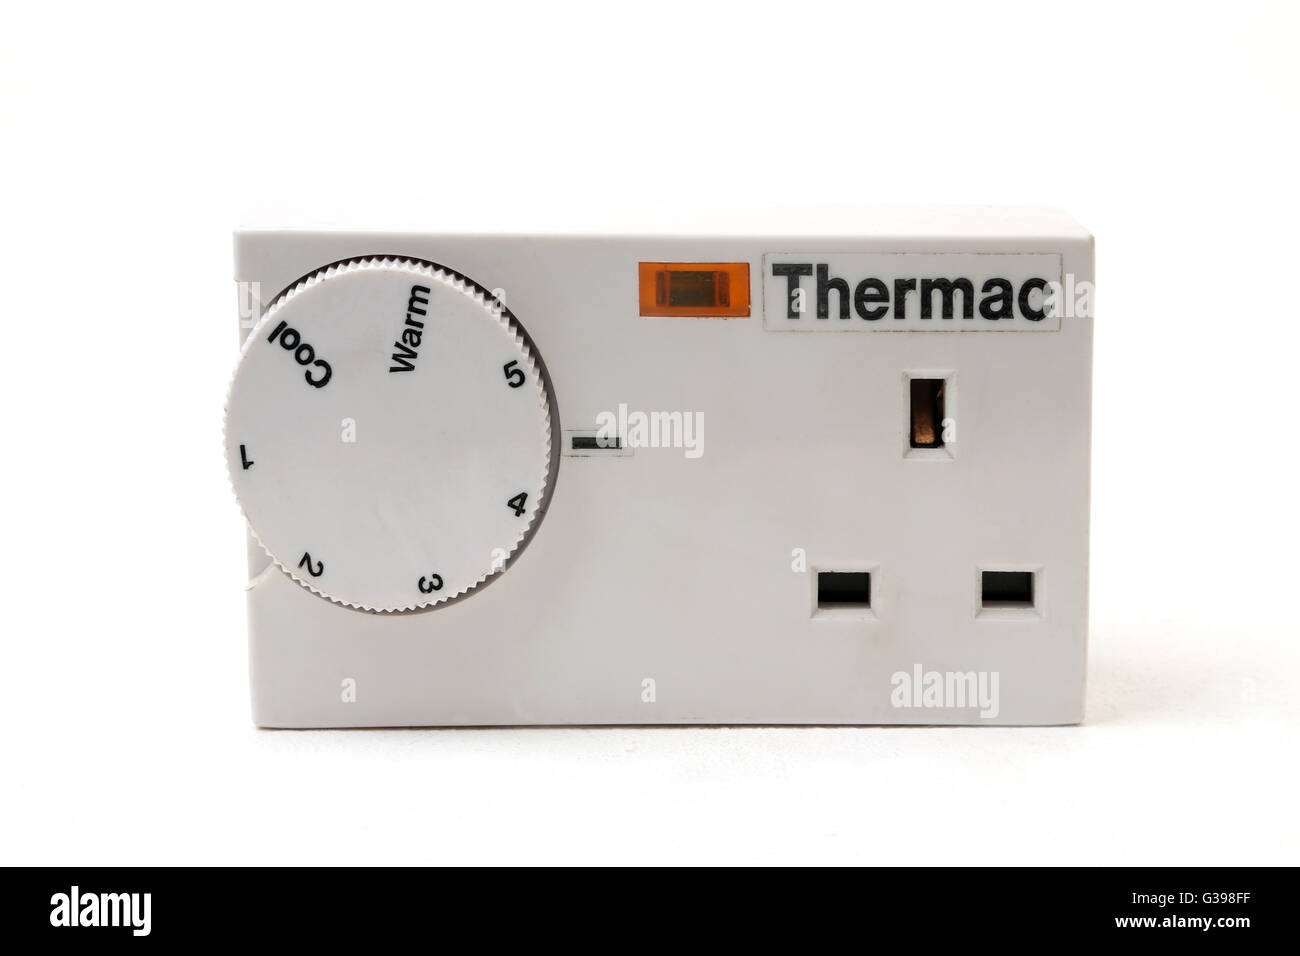 Thermac Plug In Timer For A Heater - Stock Image